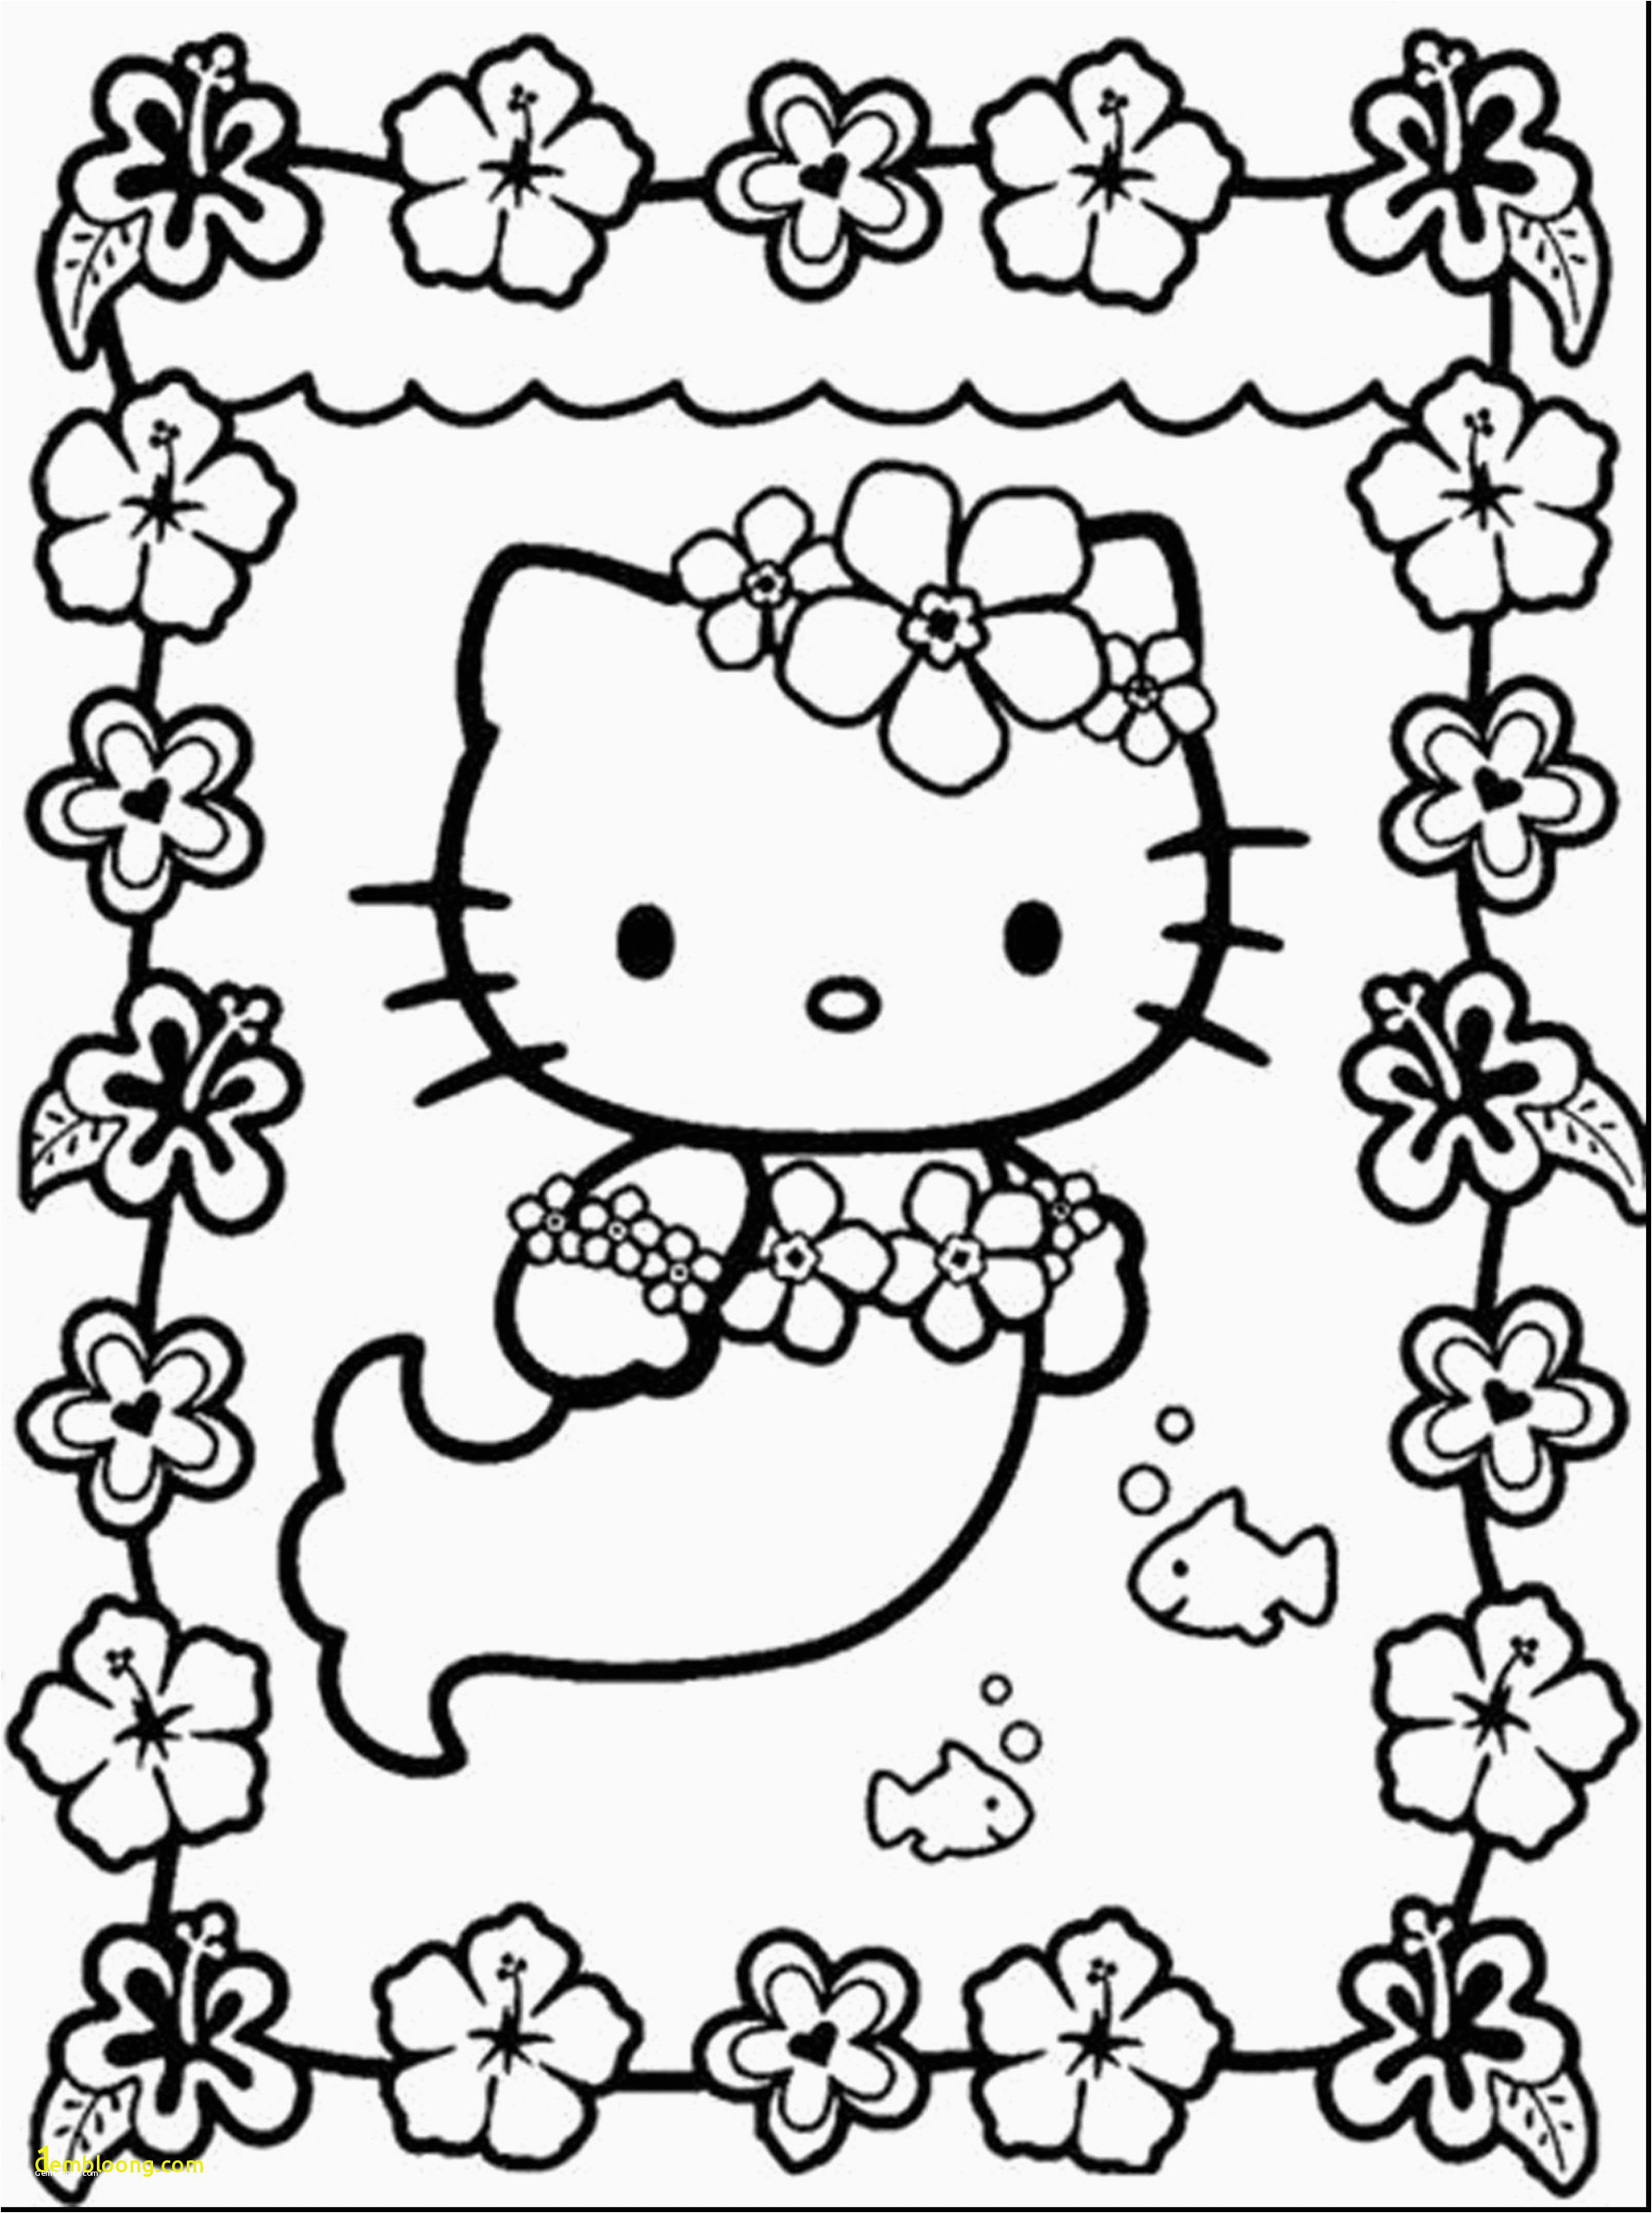 hello kitty mermaid coloring pages awesome free minnie mouse svg tags free minnie mouse printables of hello kitty mermaid coloring pages